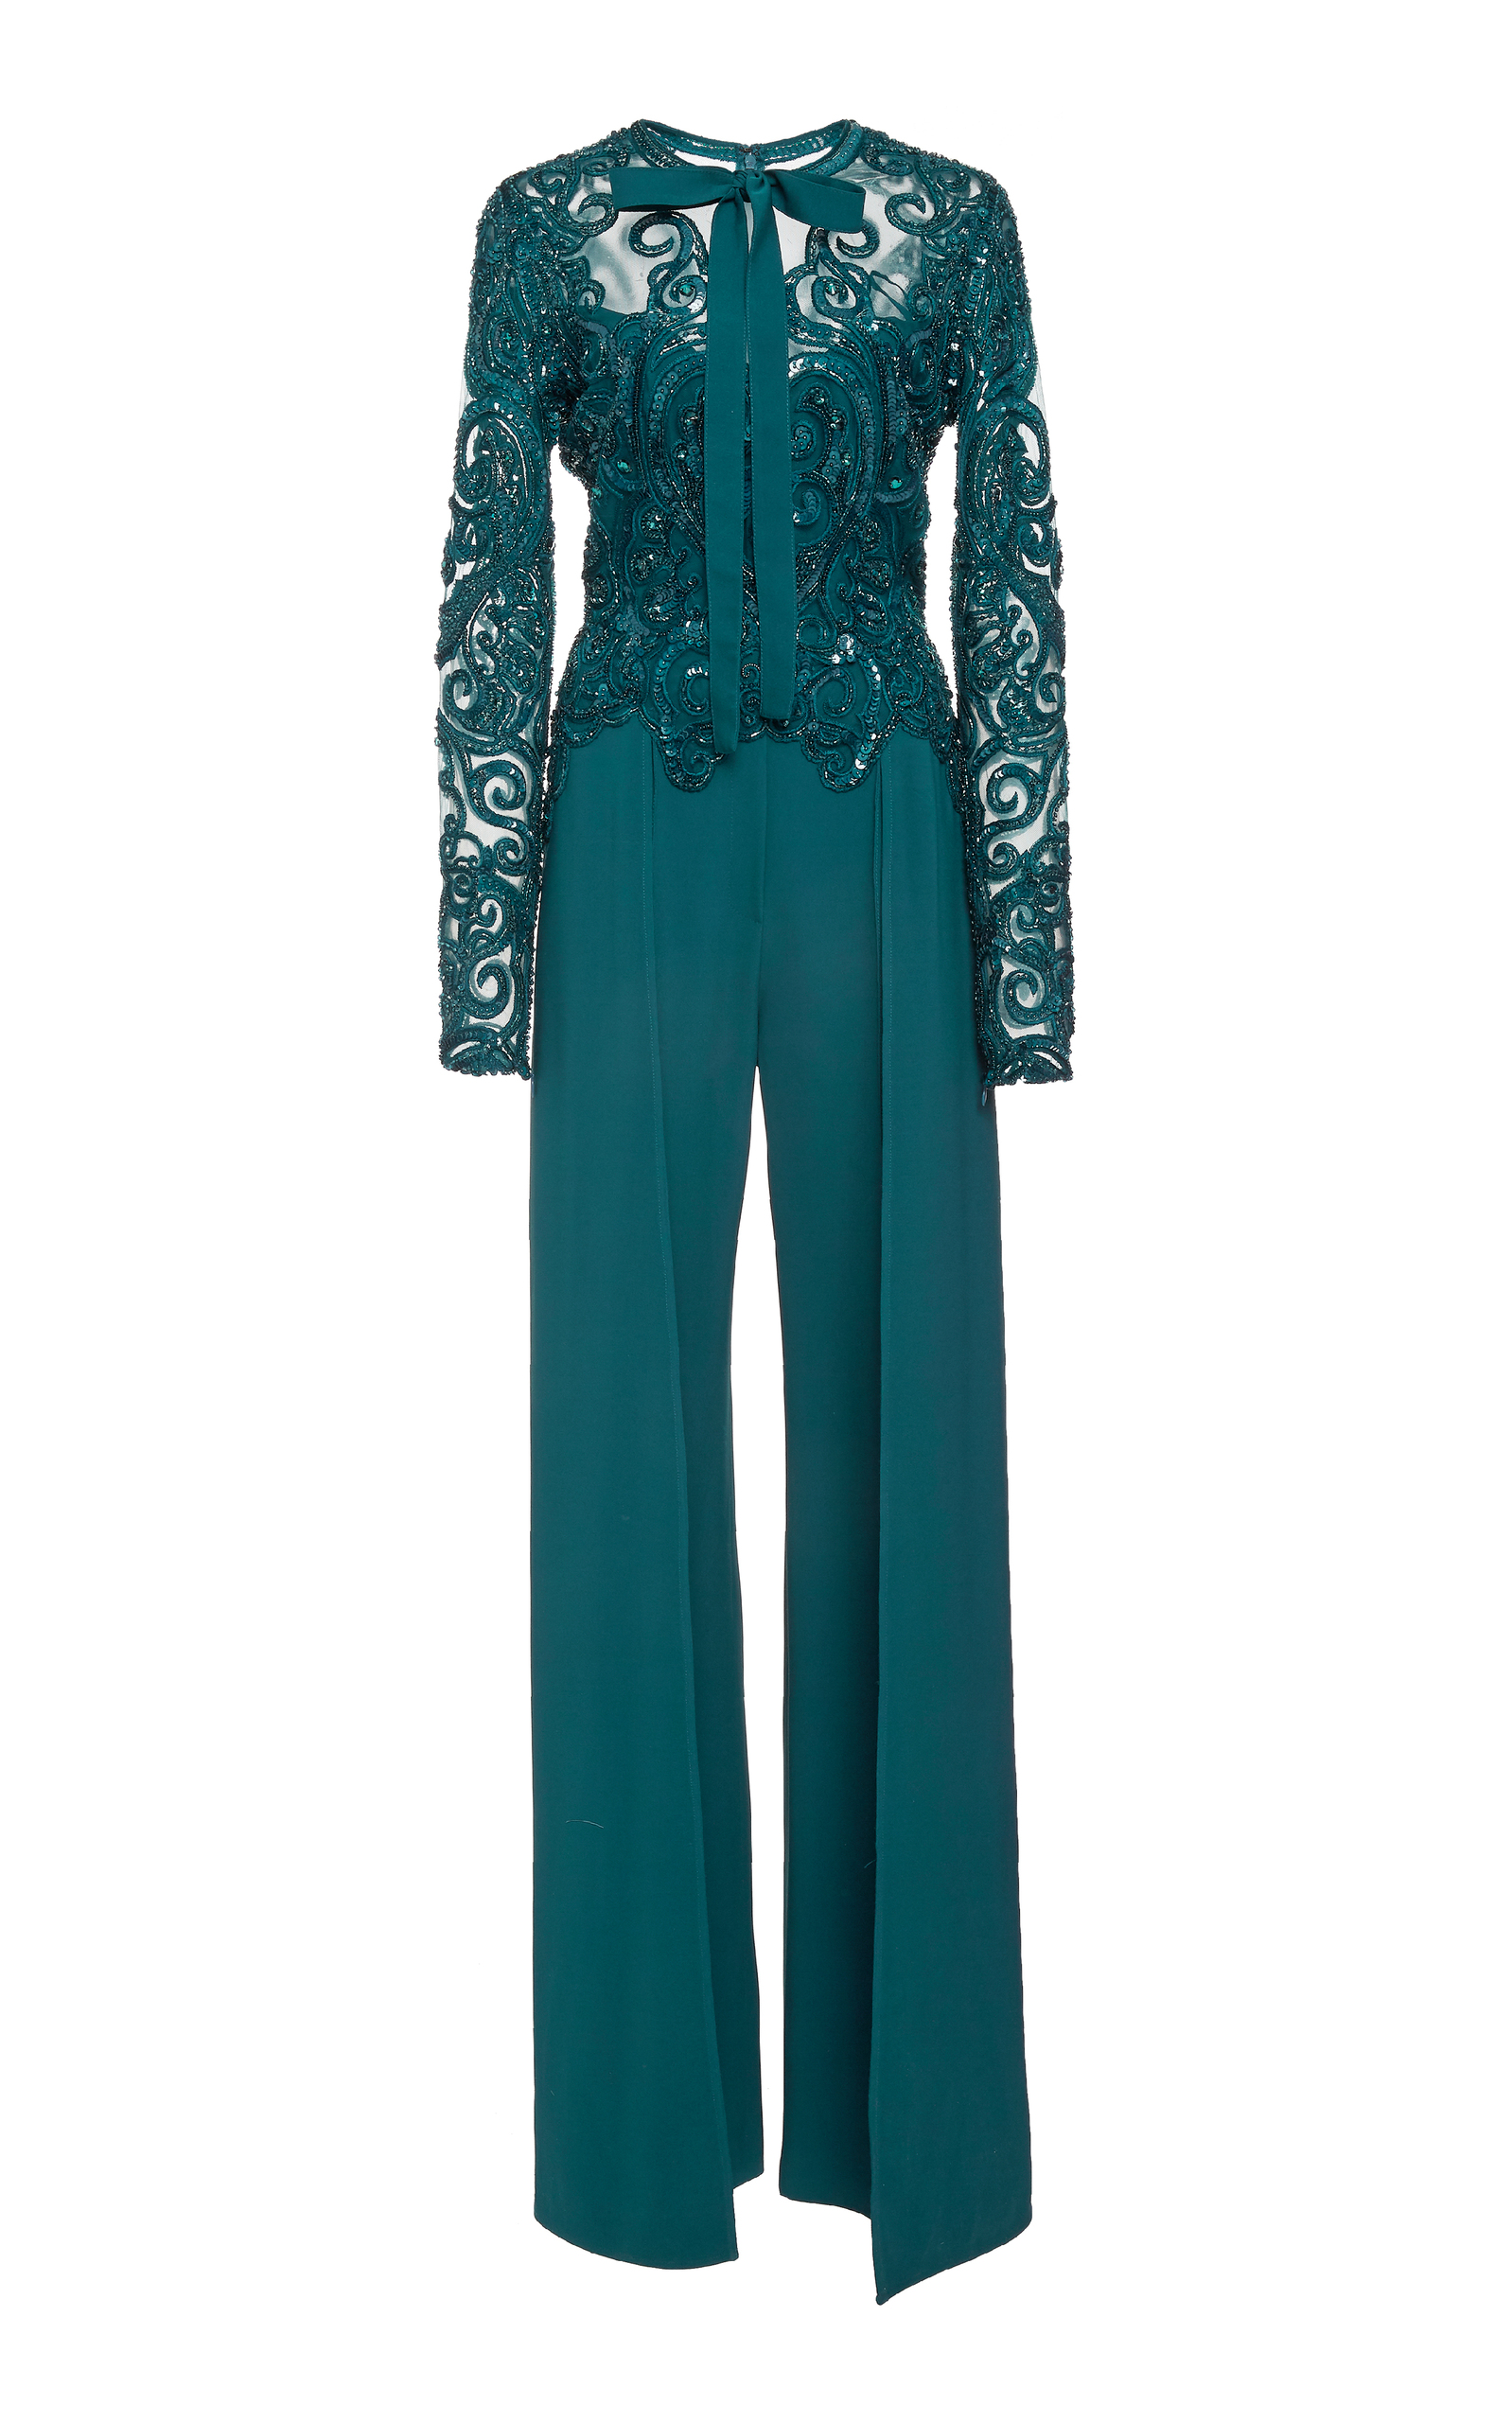 Embroidered Long Sleeve Shirt Elie Saab In China gzG46t8C